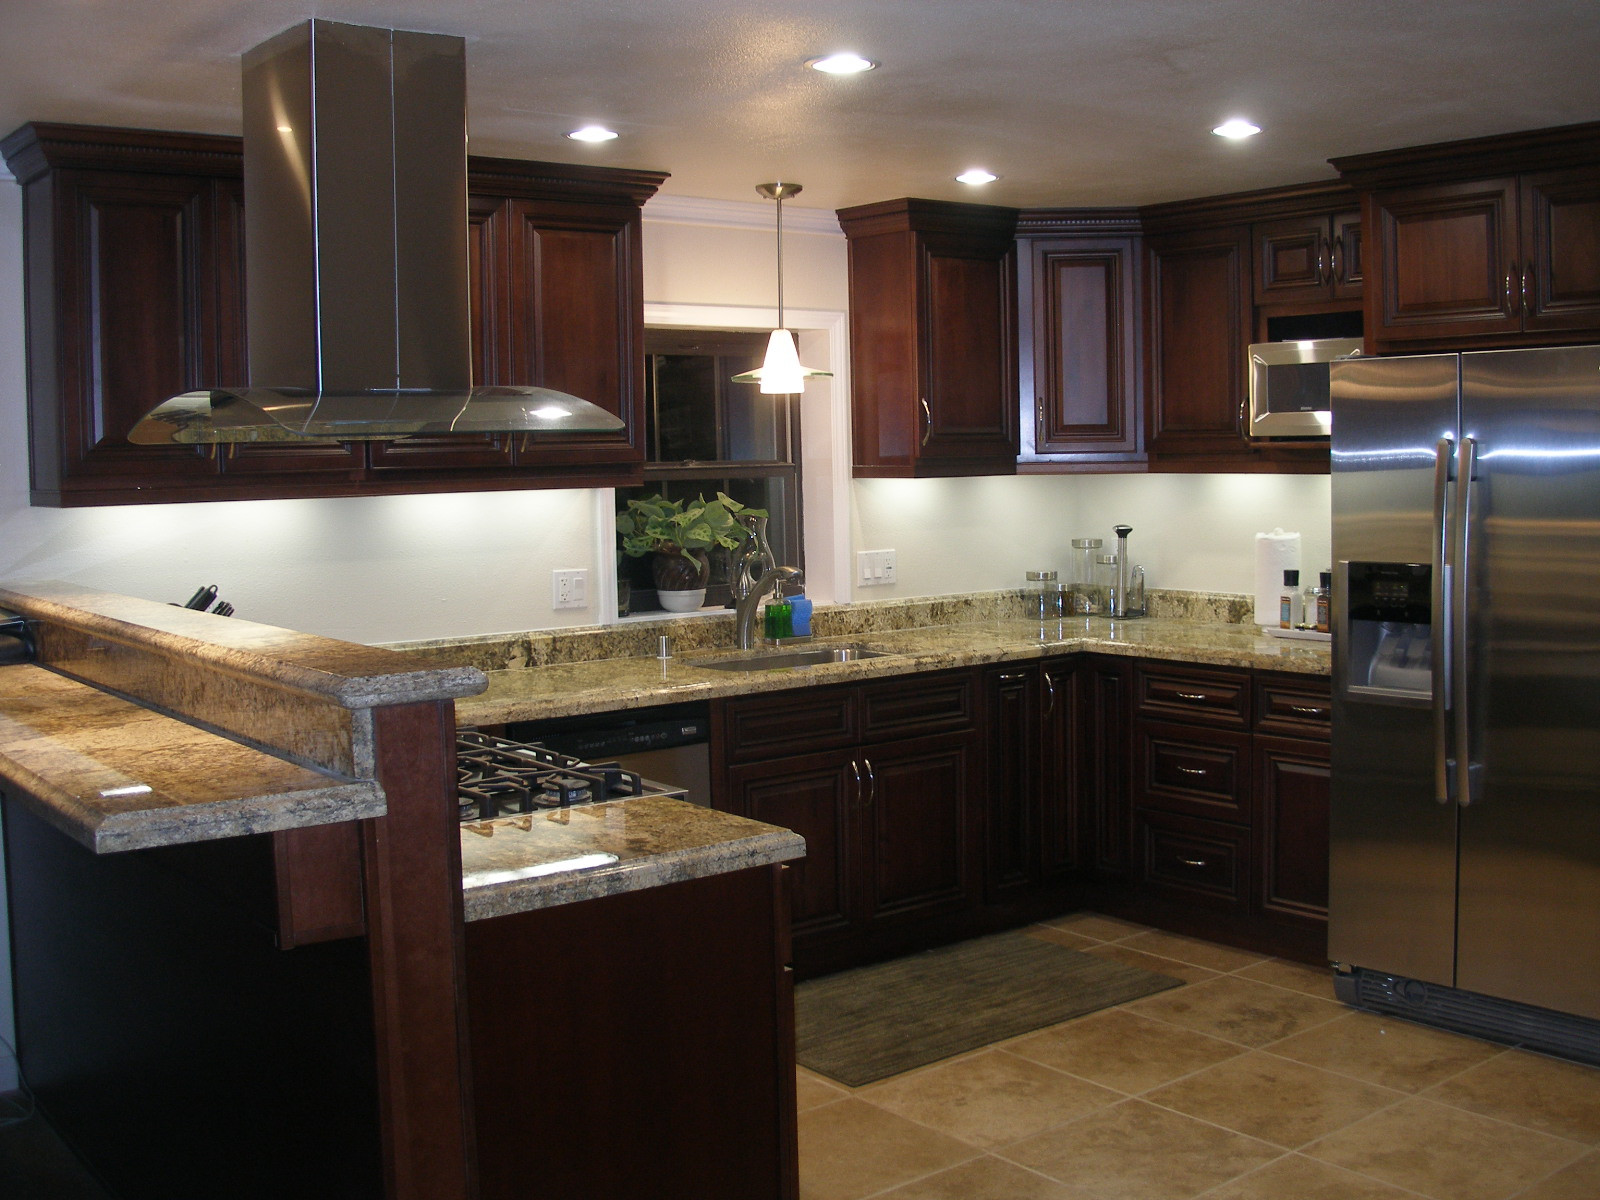 Kitchen remodel bay easy construction - Kitchen remodel designs ...